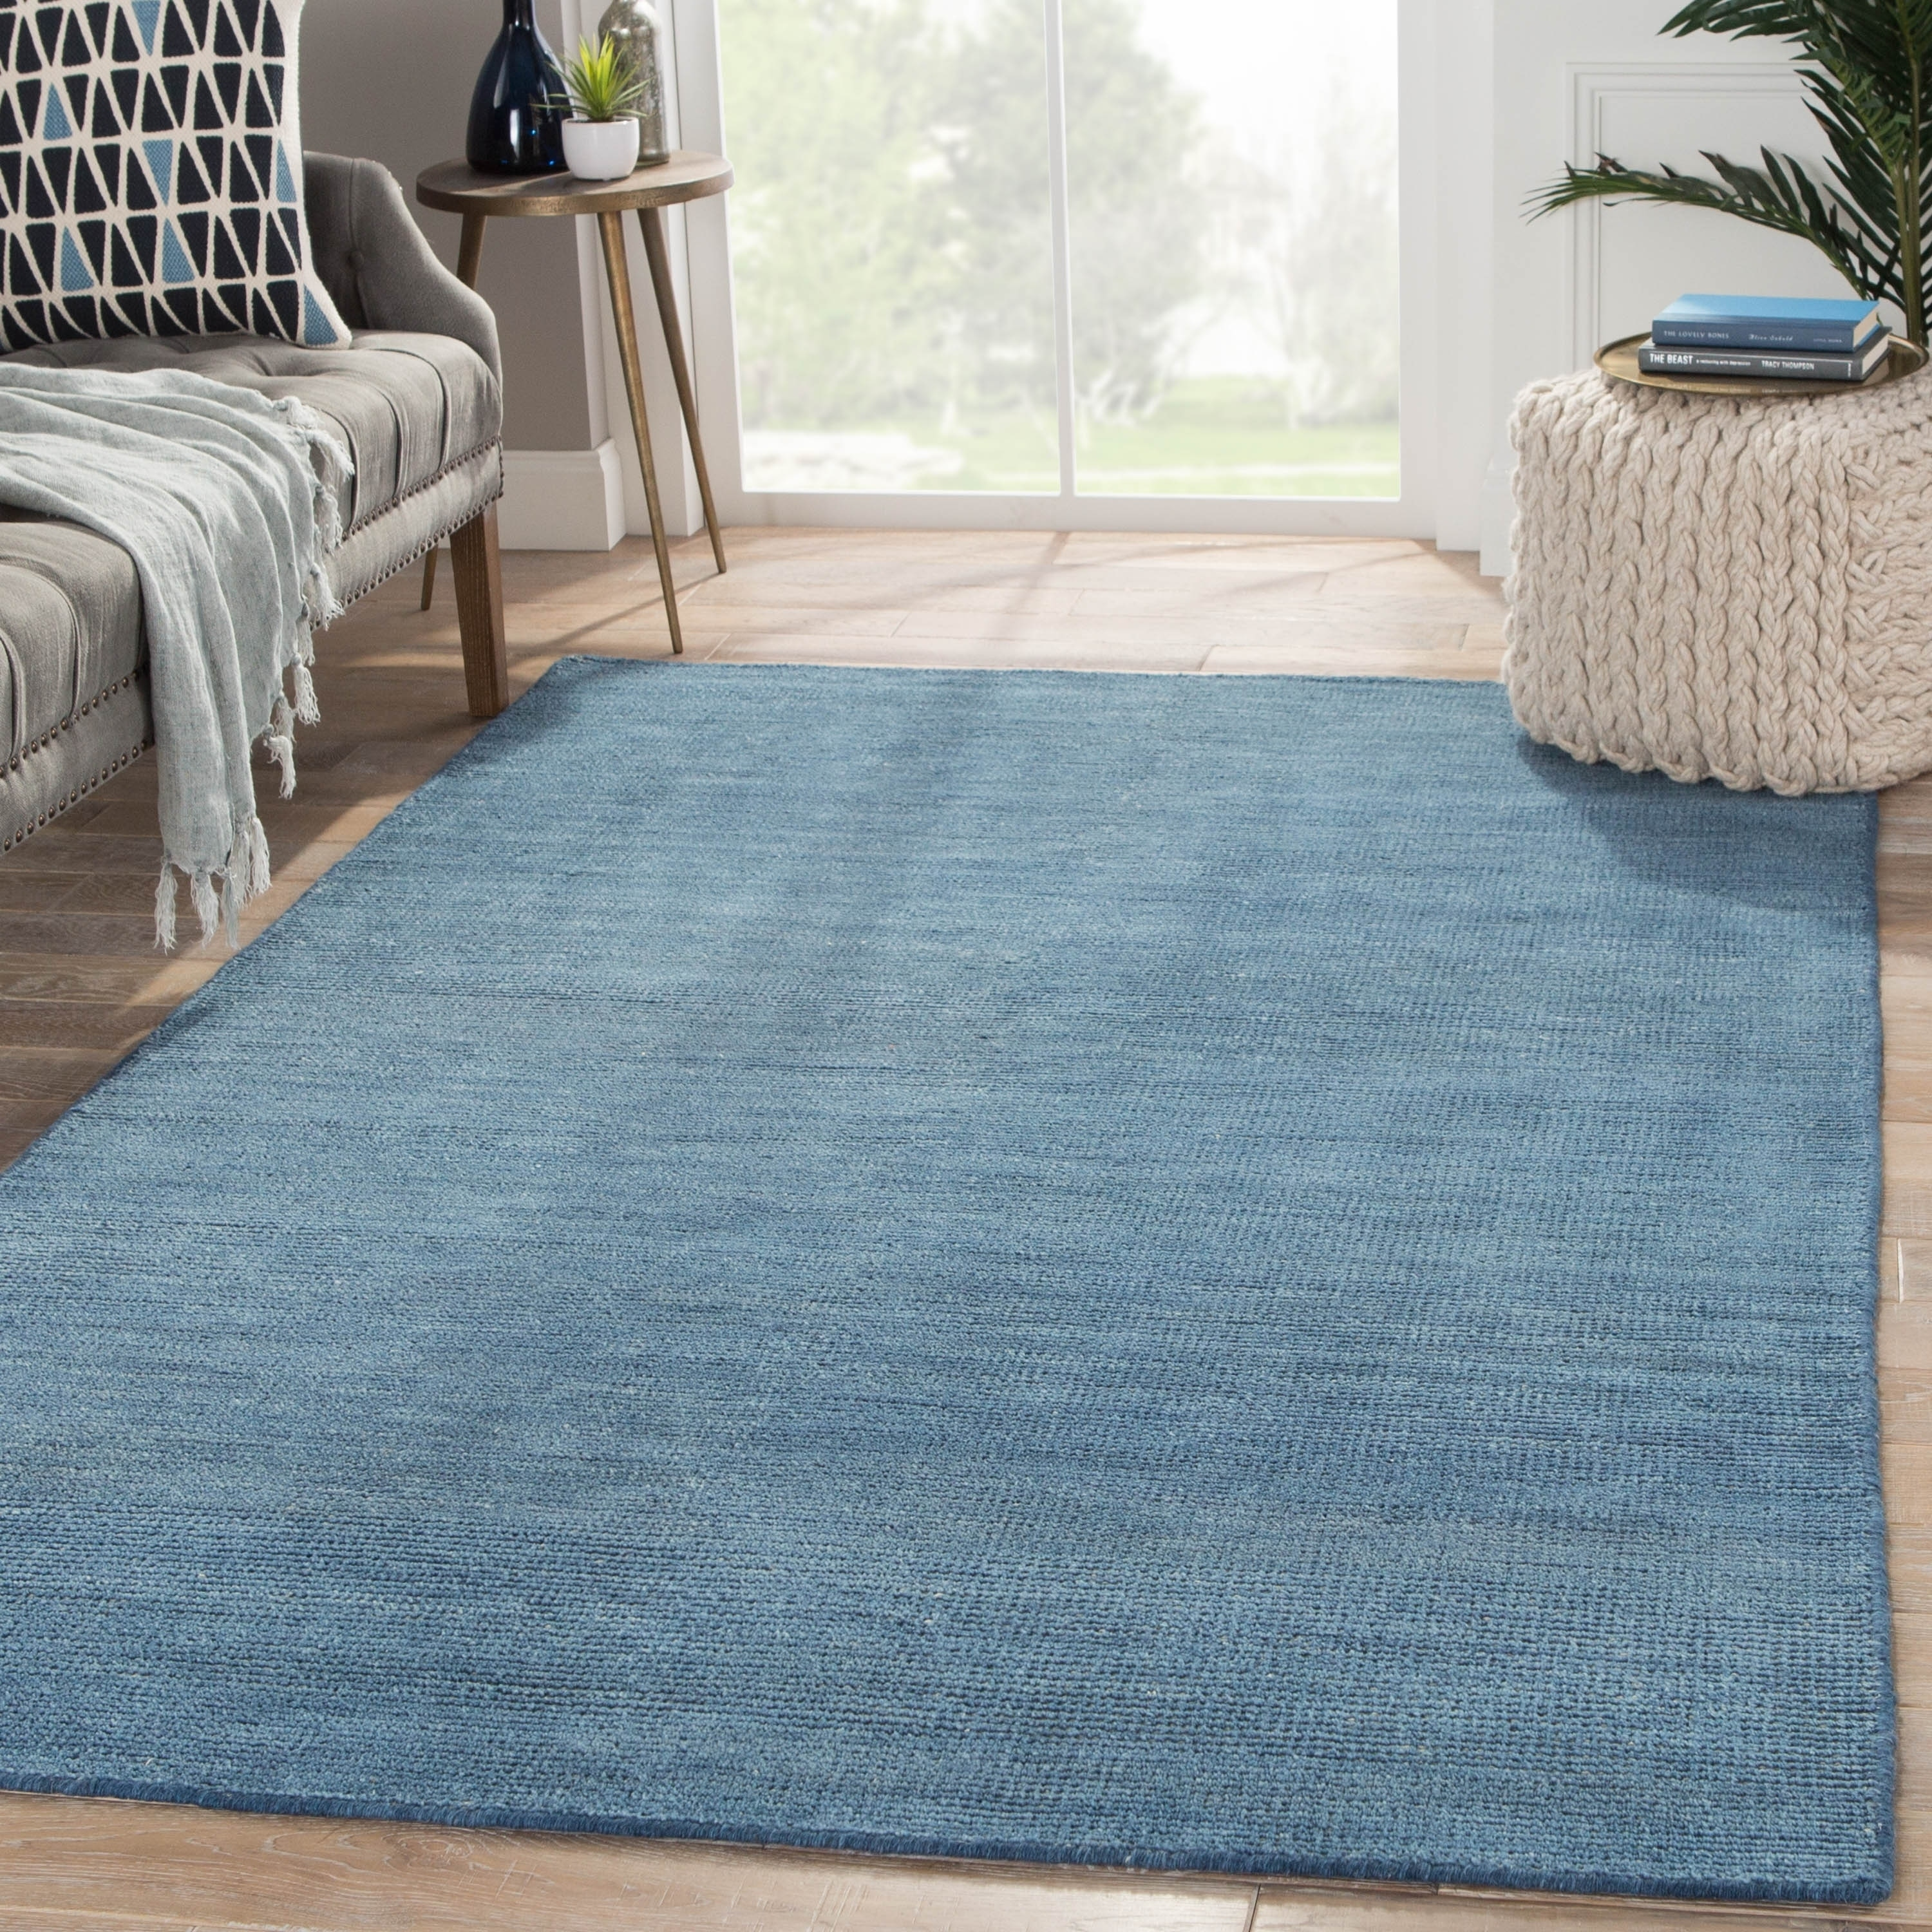 Picture of: Hand Knotted Solid Blue Area Rug 8 X 10 7 10 X 9 10 Overstock 11351023